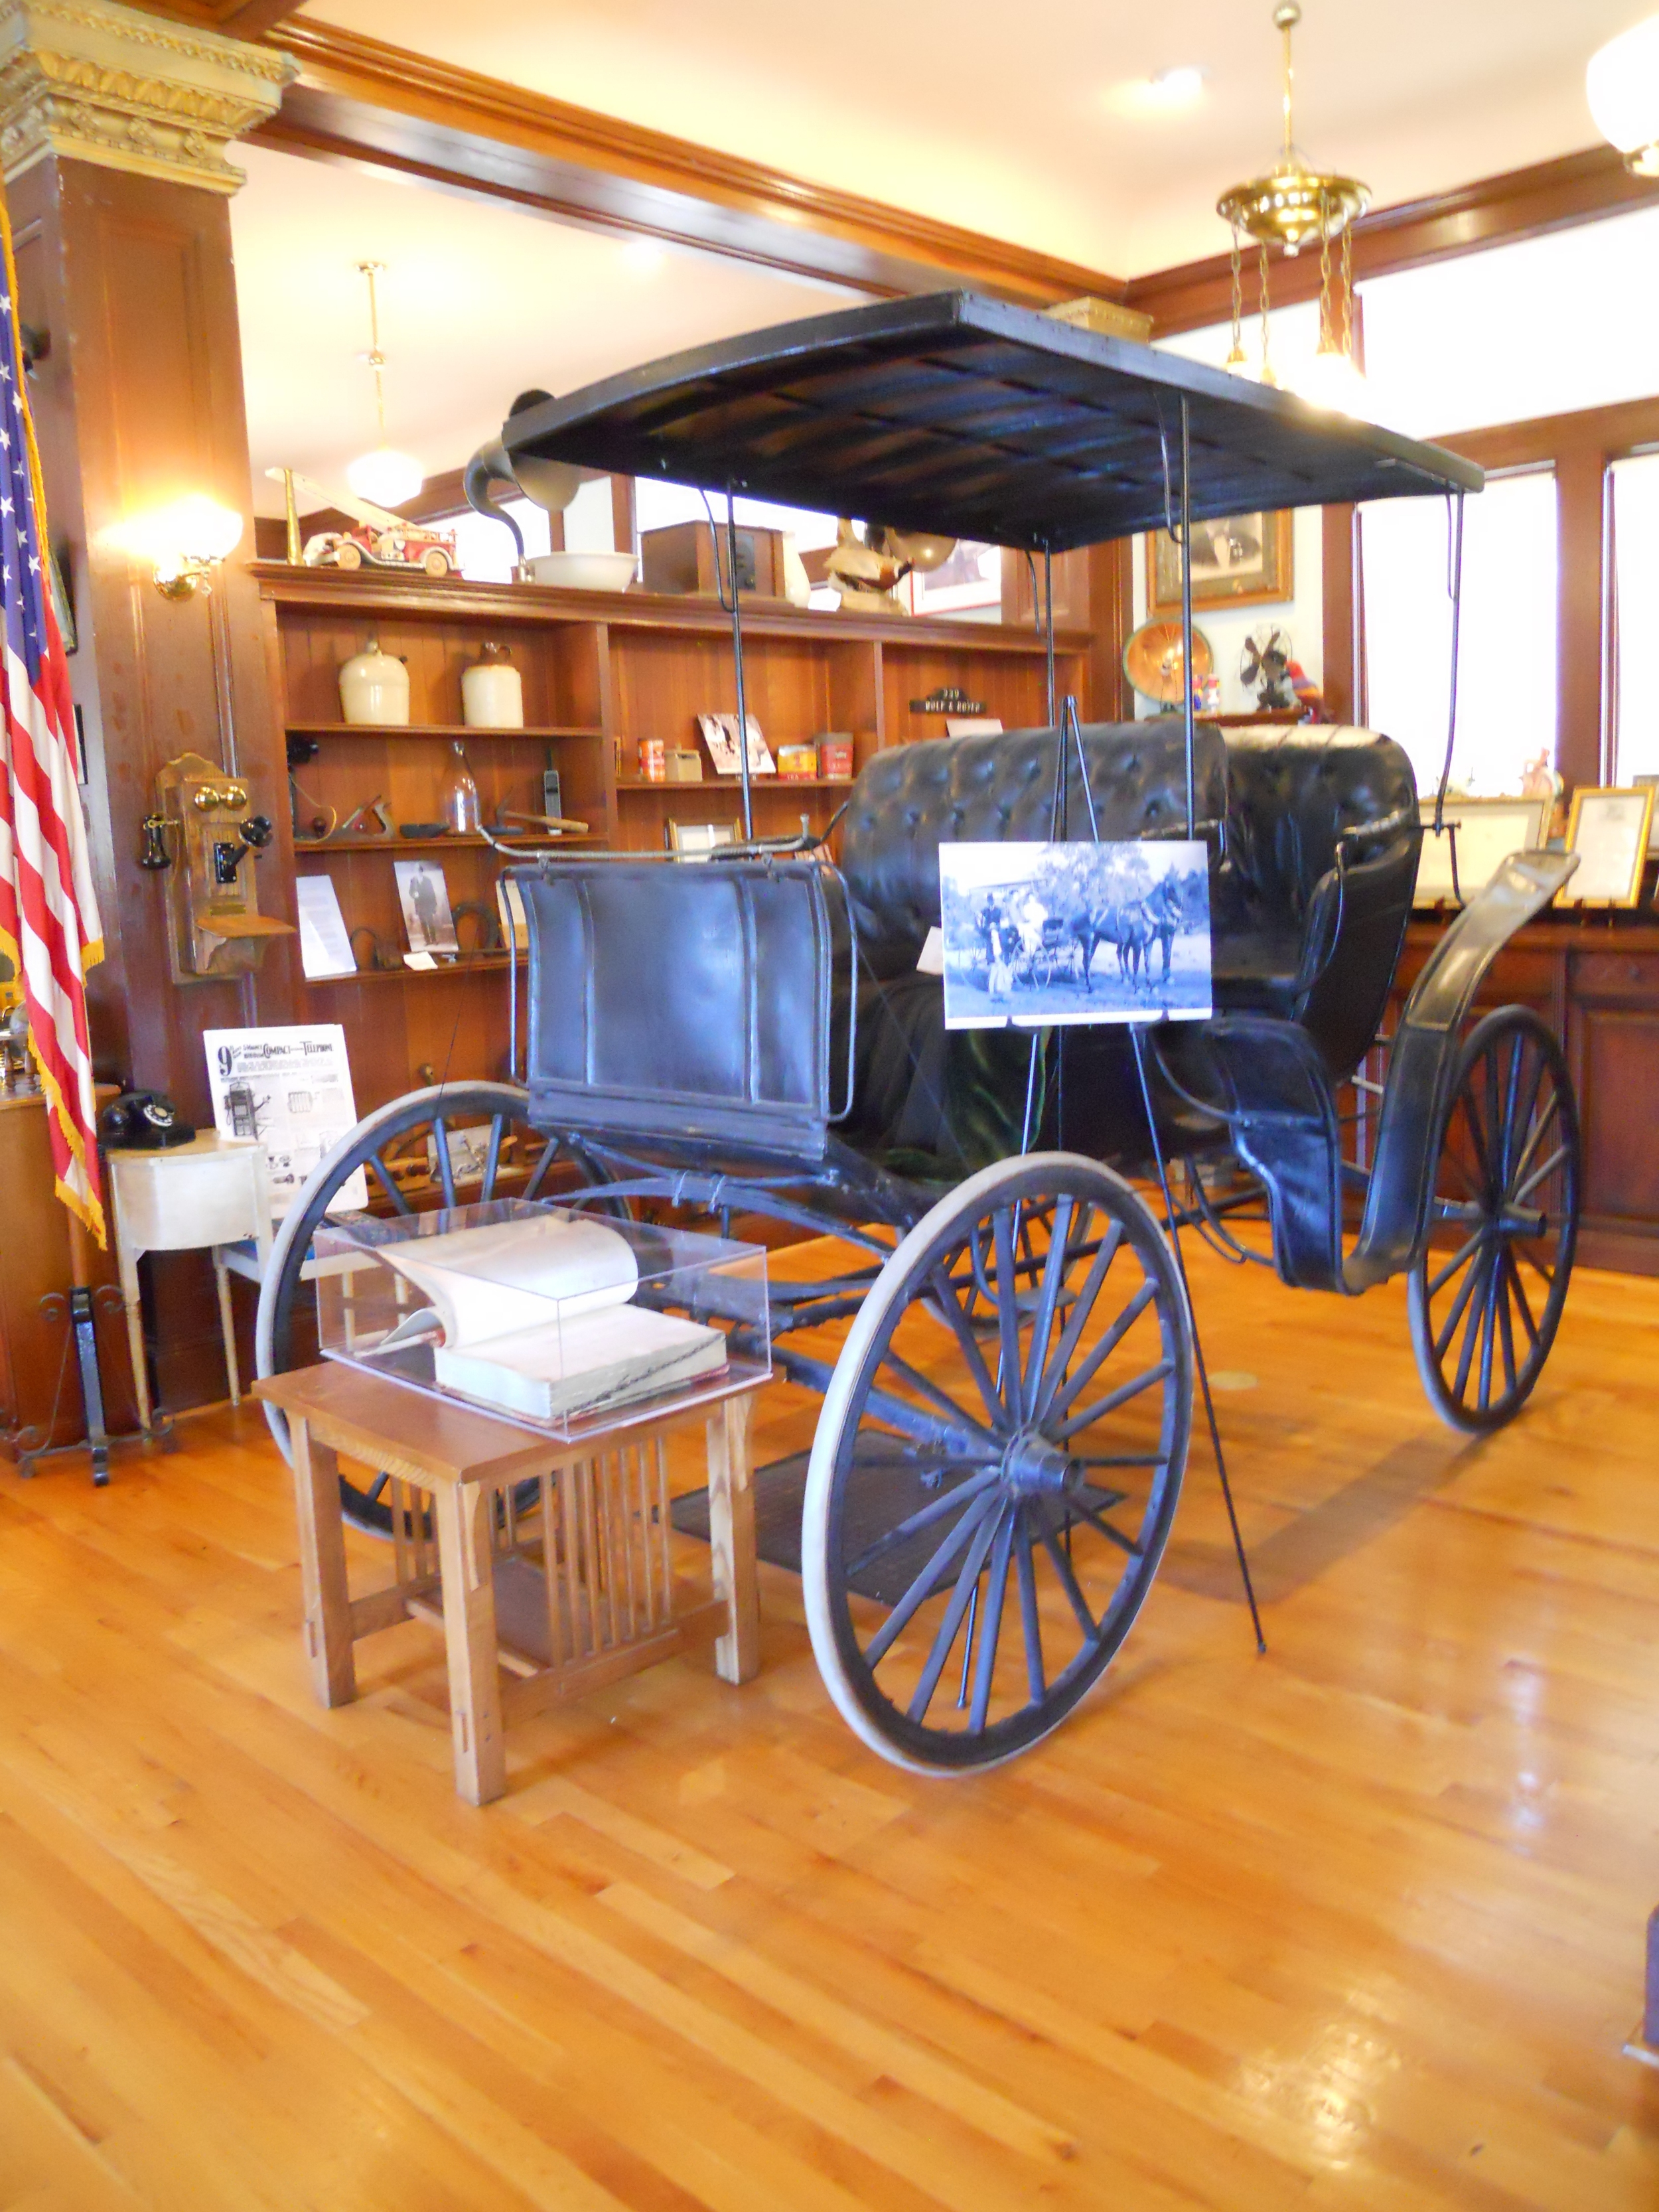 The Fiddyment family carriage currently on display at the Carnegie Museum